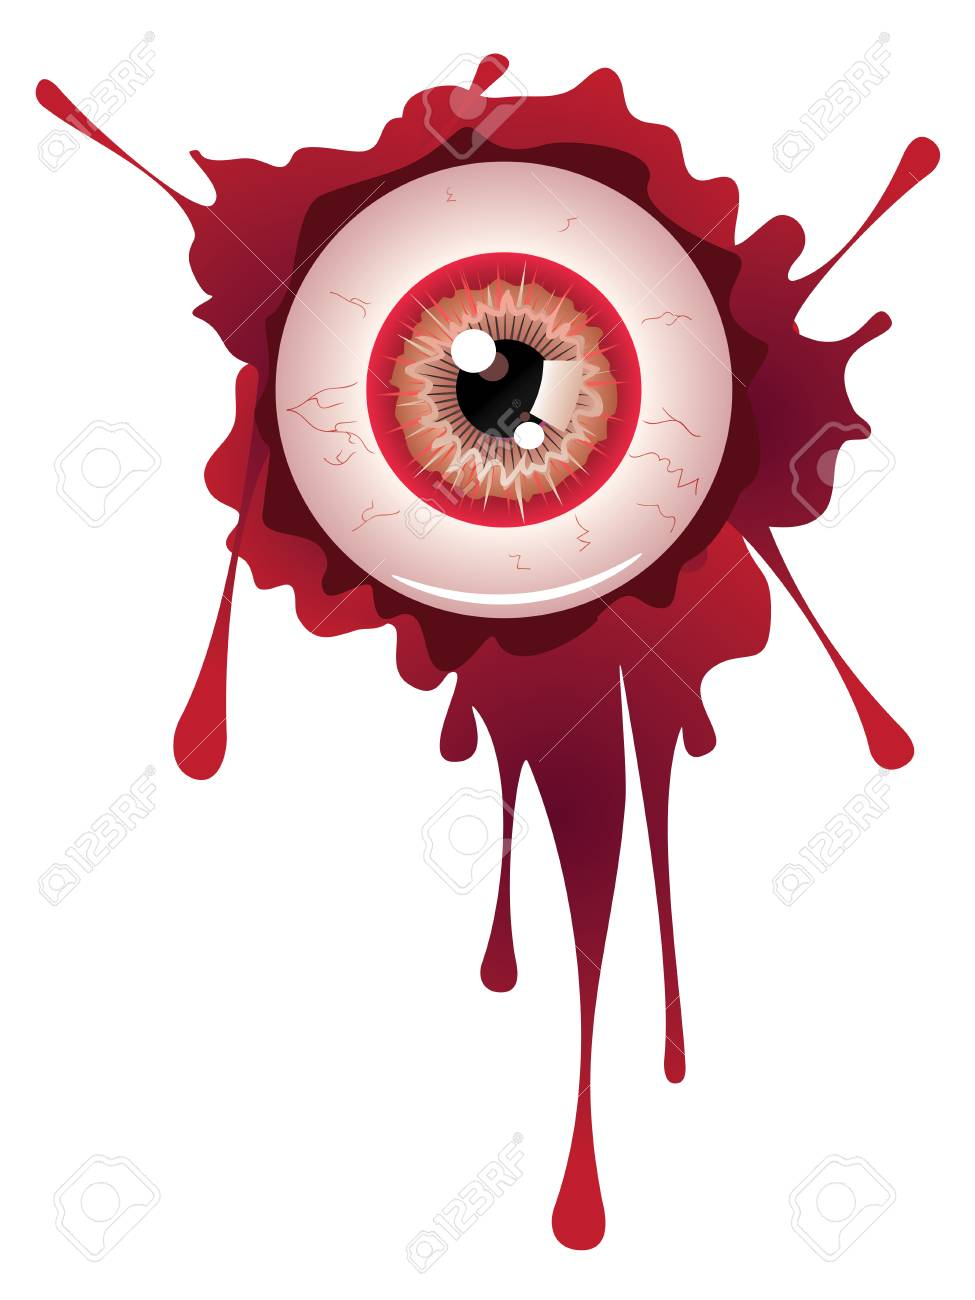 Spooky halloween eyeball with grunge blood splatter